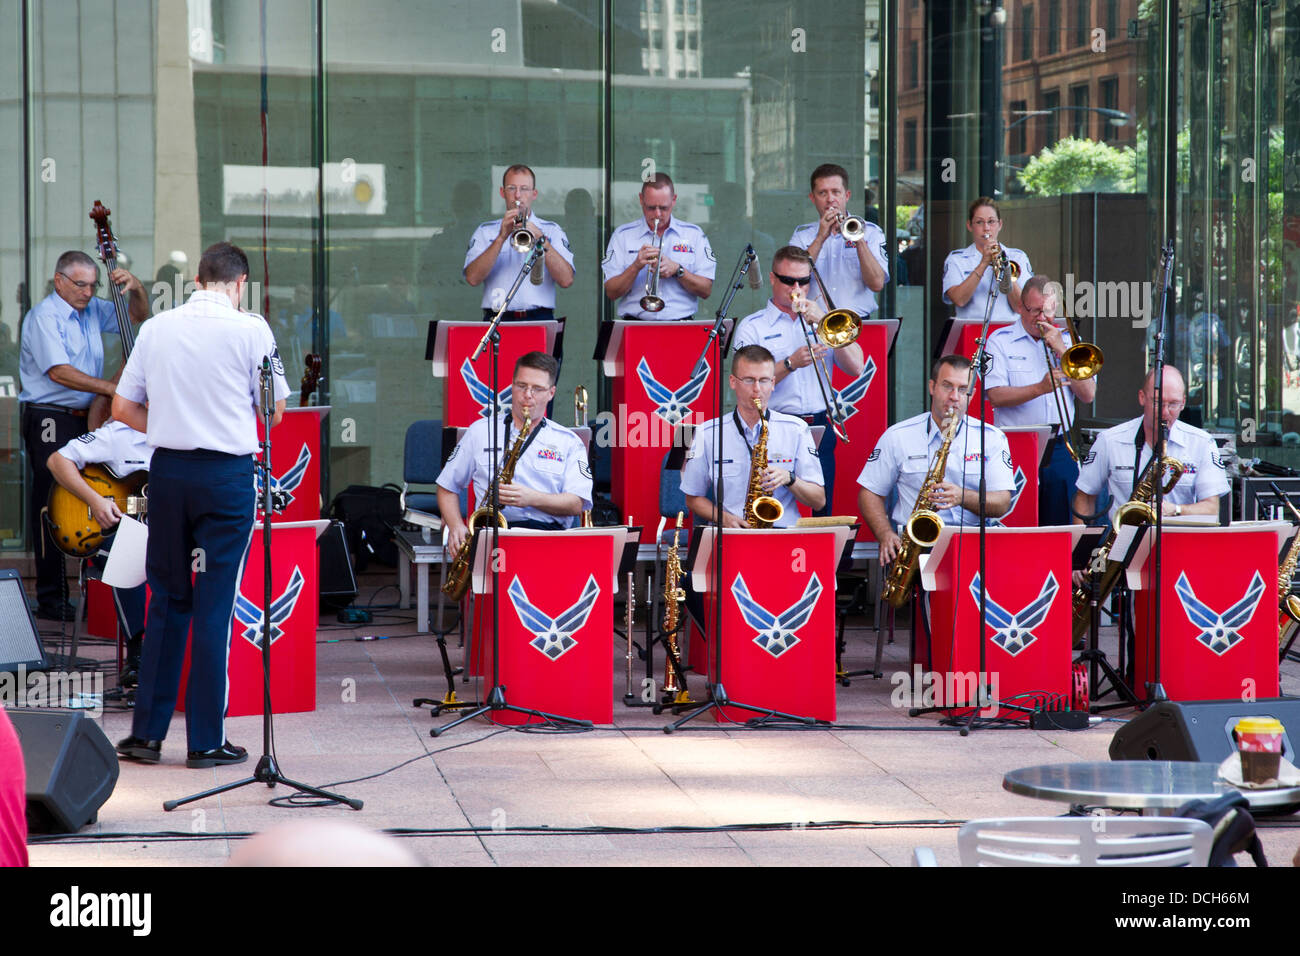 The U.S. air force 'Band of Mid-America' playing on a street in Chicago, Illinois, USA - Stock Image